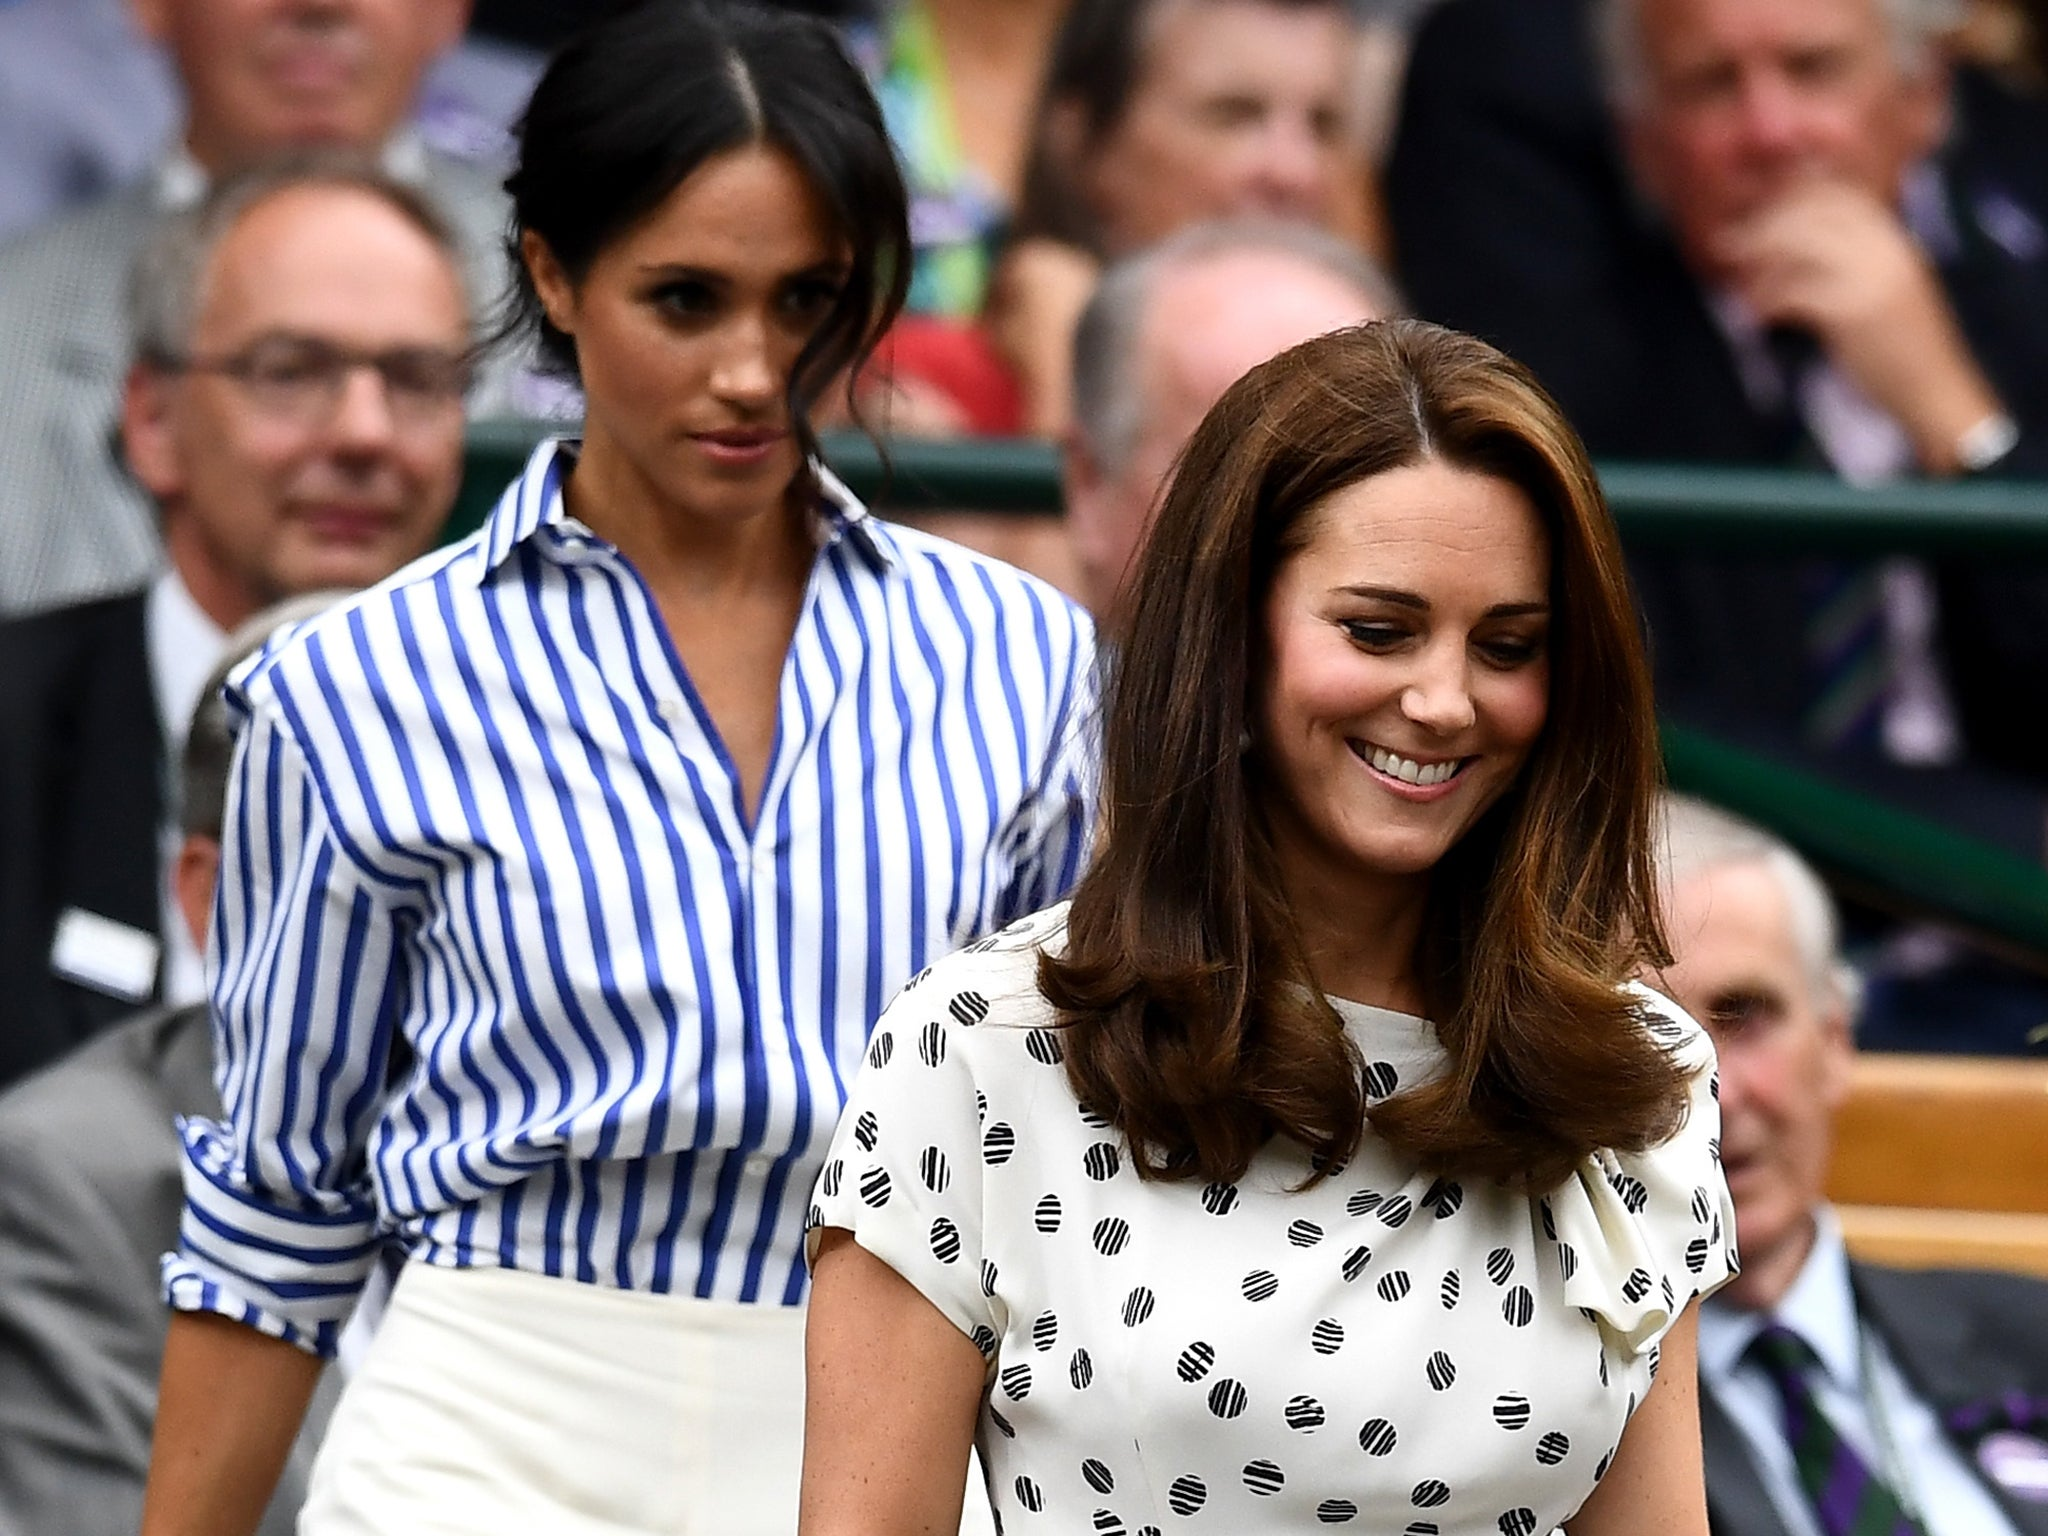 Wimbledon 2019: Meghan Markle and Kate Middleton's most stylish looks over the years